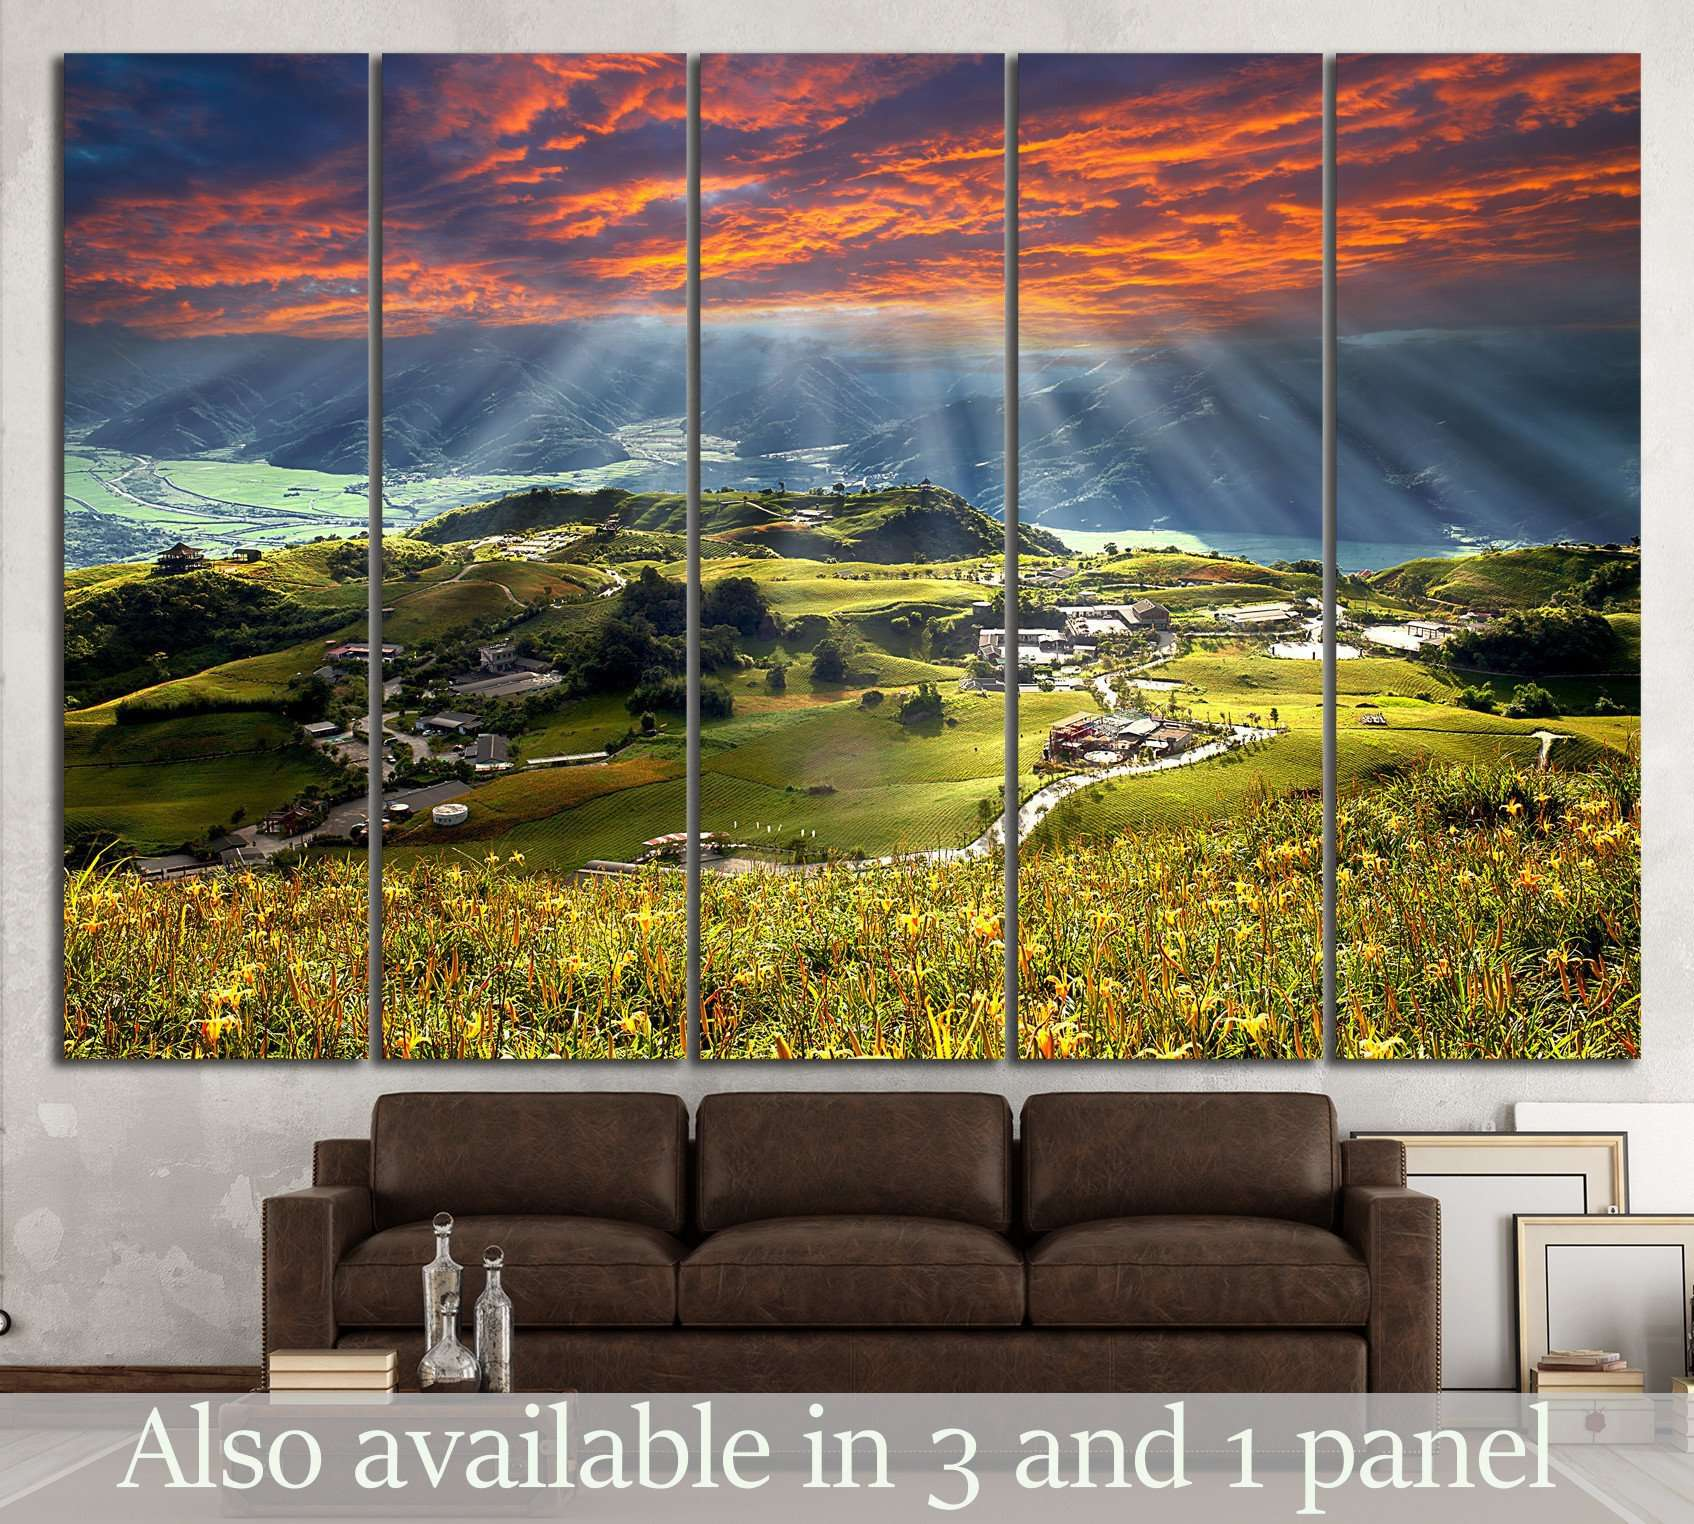 Landscape Wall Art at Zellart Canvas Arts